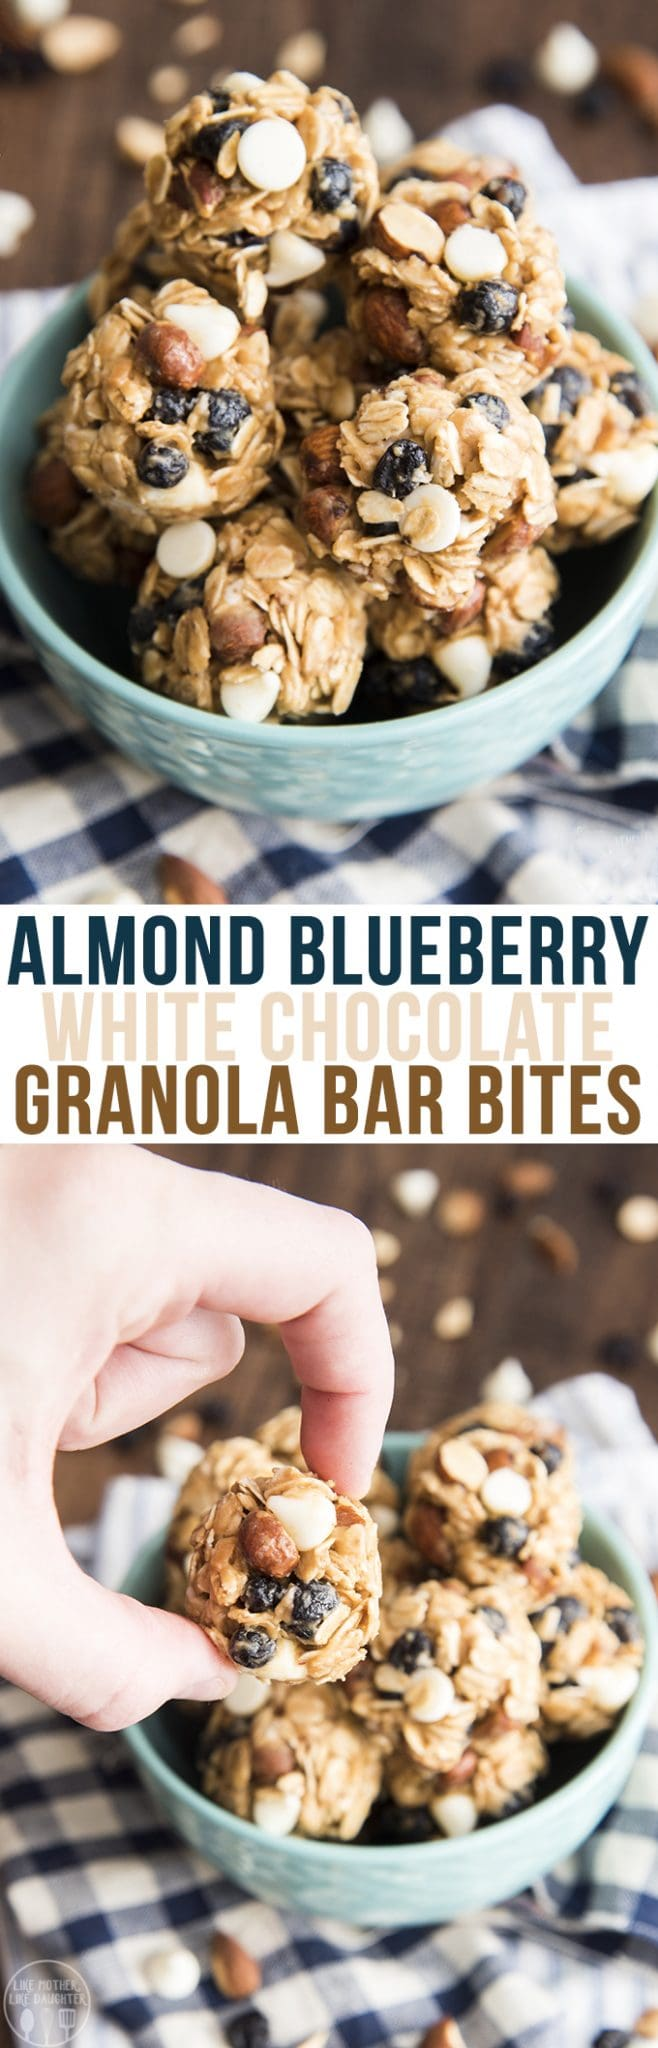 These blueberry almond white chocolate chip granola bar bites are an amazing healthier treat made with only 6 ingredients, great for a portable snack!